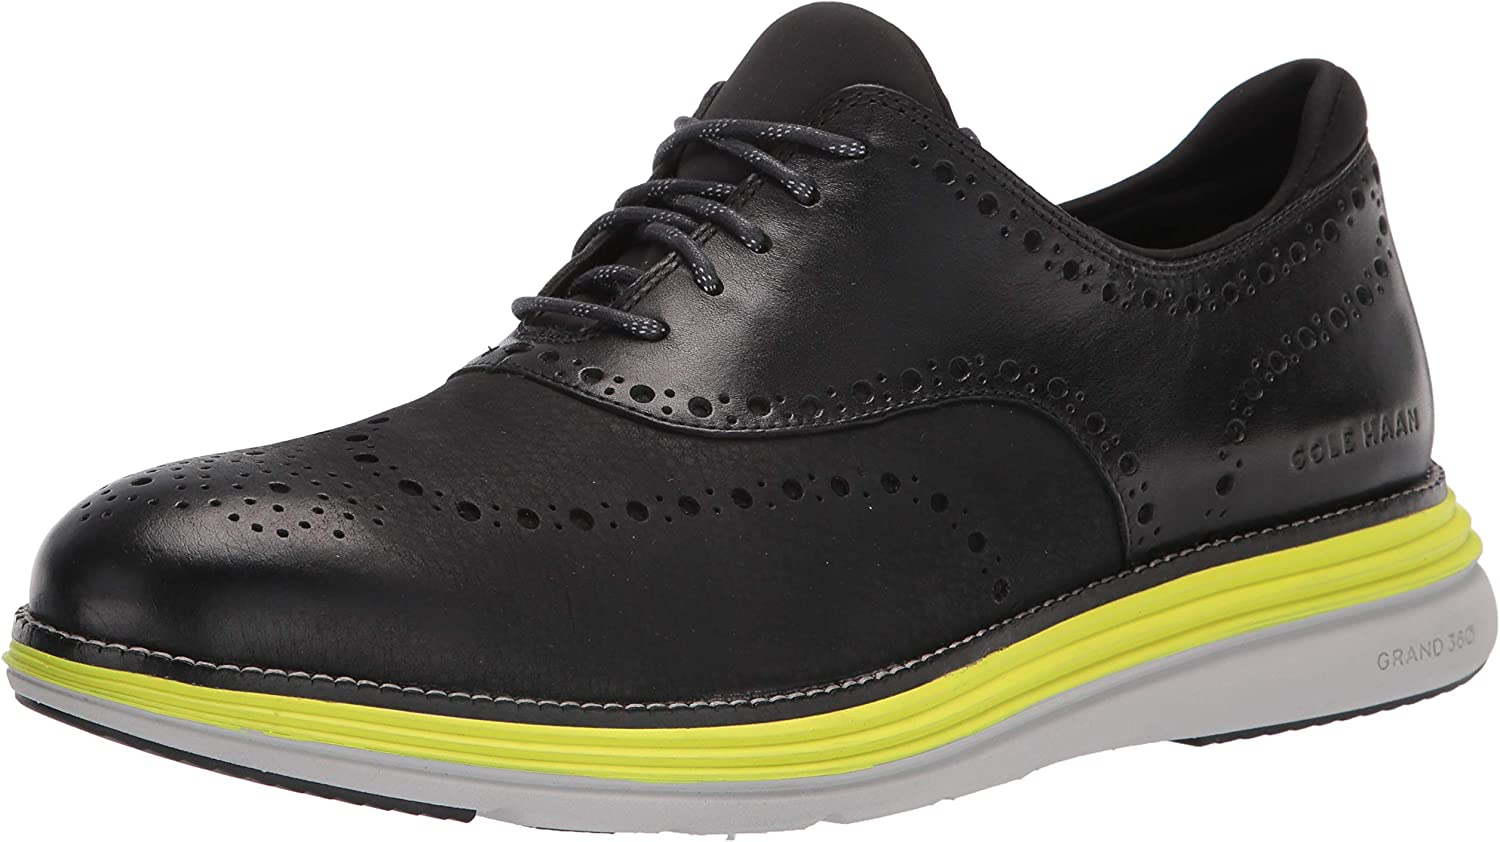 Cole Haan Men's Max 79% OFF Originalgrand Ox Opening large release sale Ultra Wing Oxford